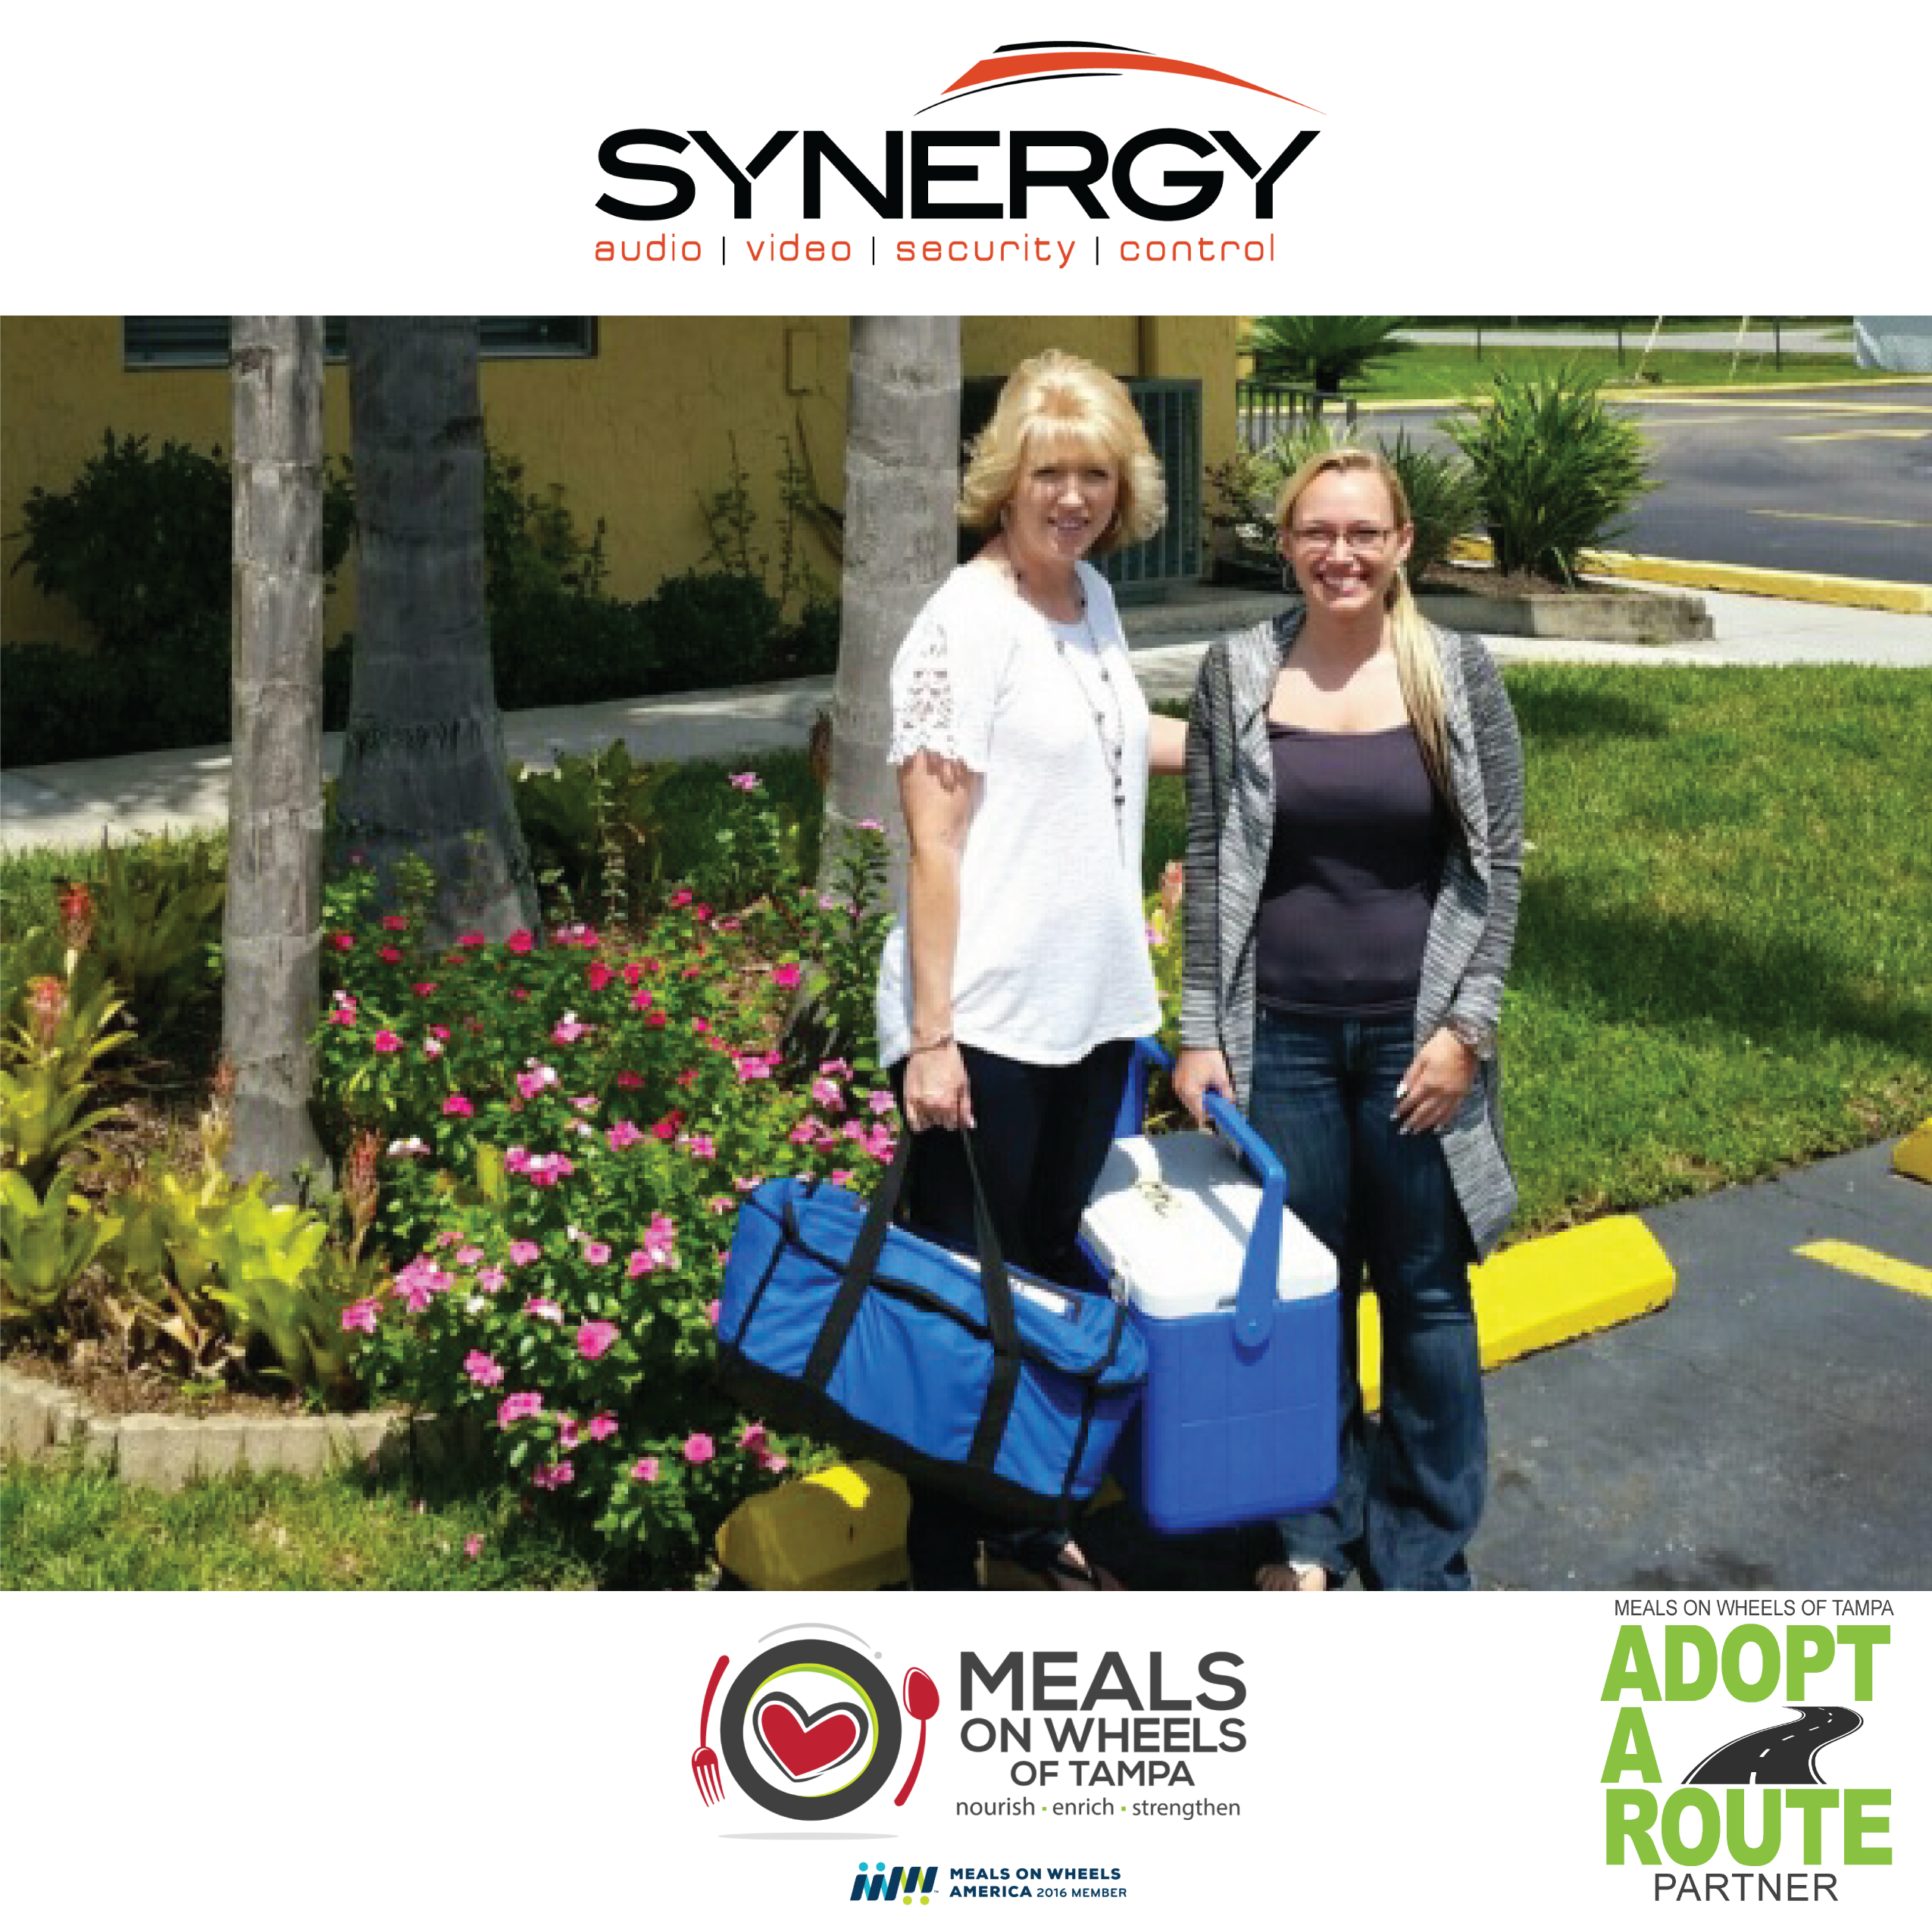 Adopt A Route Aar Meals On Wheels Of Tampa